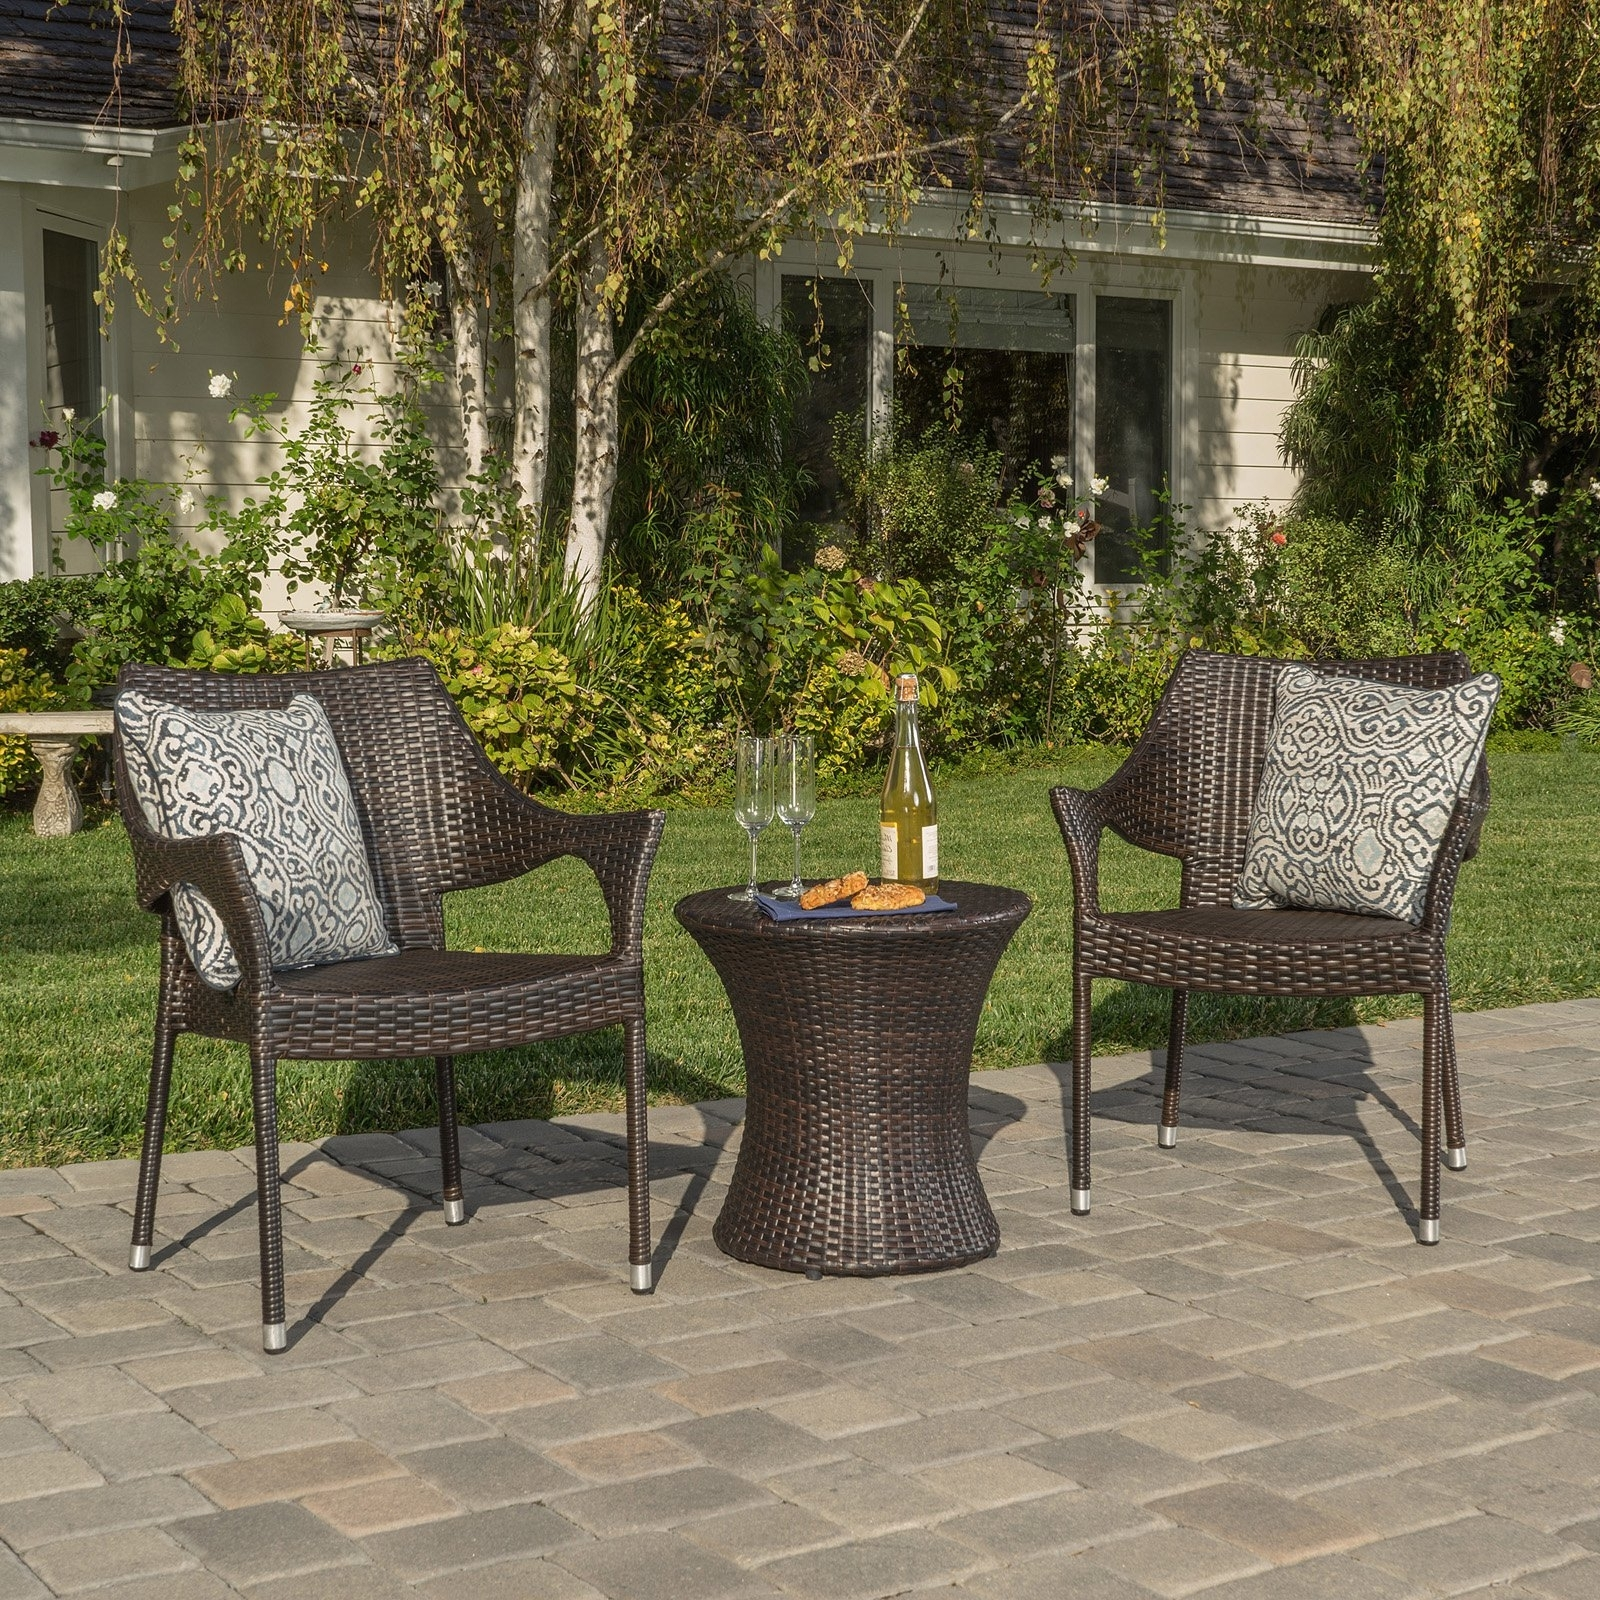 Well Known 46 Patio Conversation Sets Under 300, Patio Conversation Set 4 Piece Within Patio Conversation Sets Under $ (View 12 of 15)